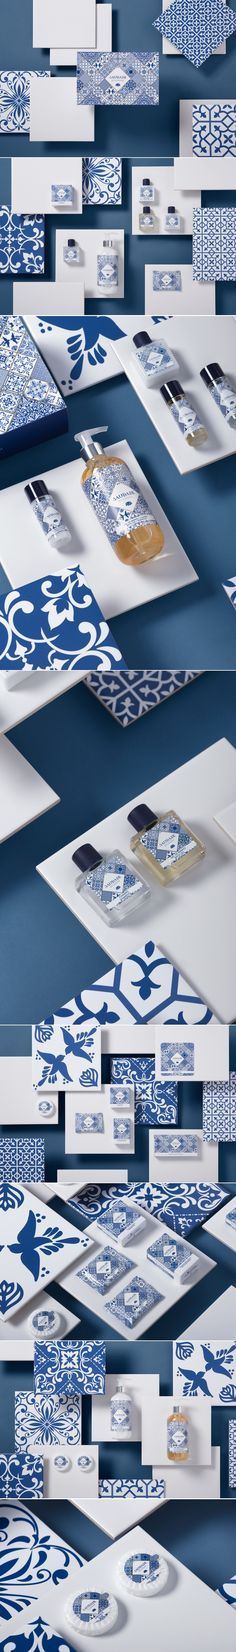 Saudade by Lousani Amenities Packaging by M&A Creative Agency